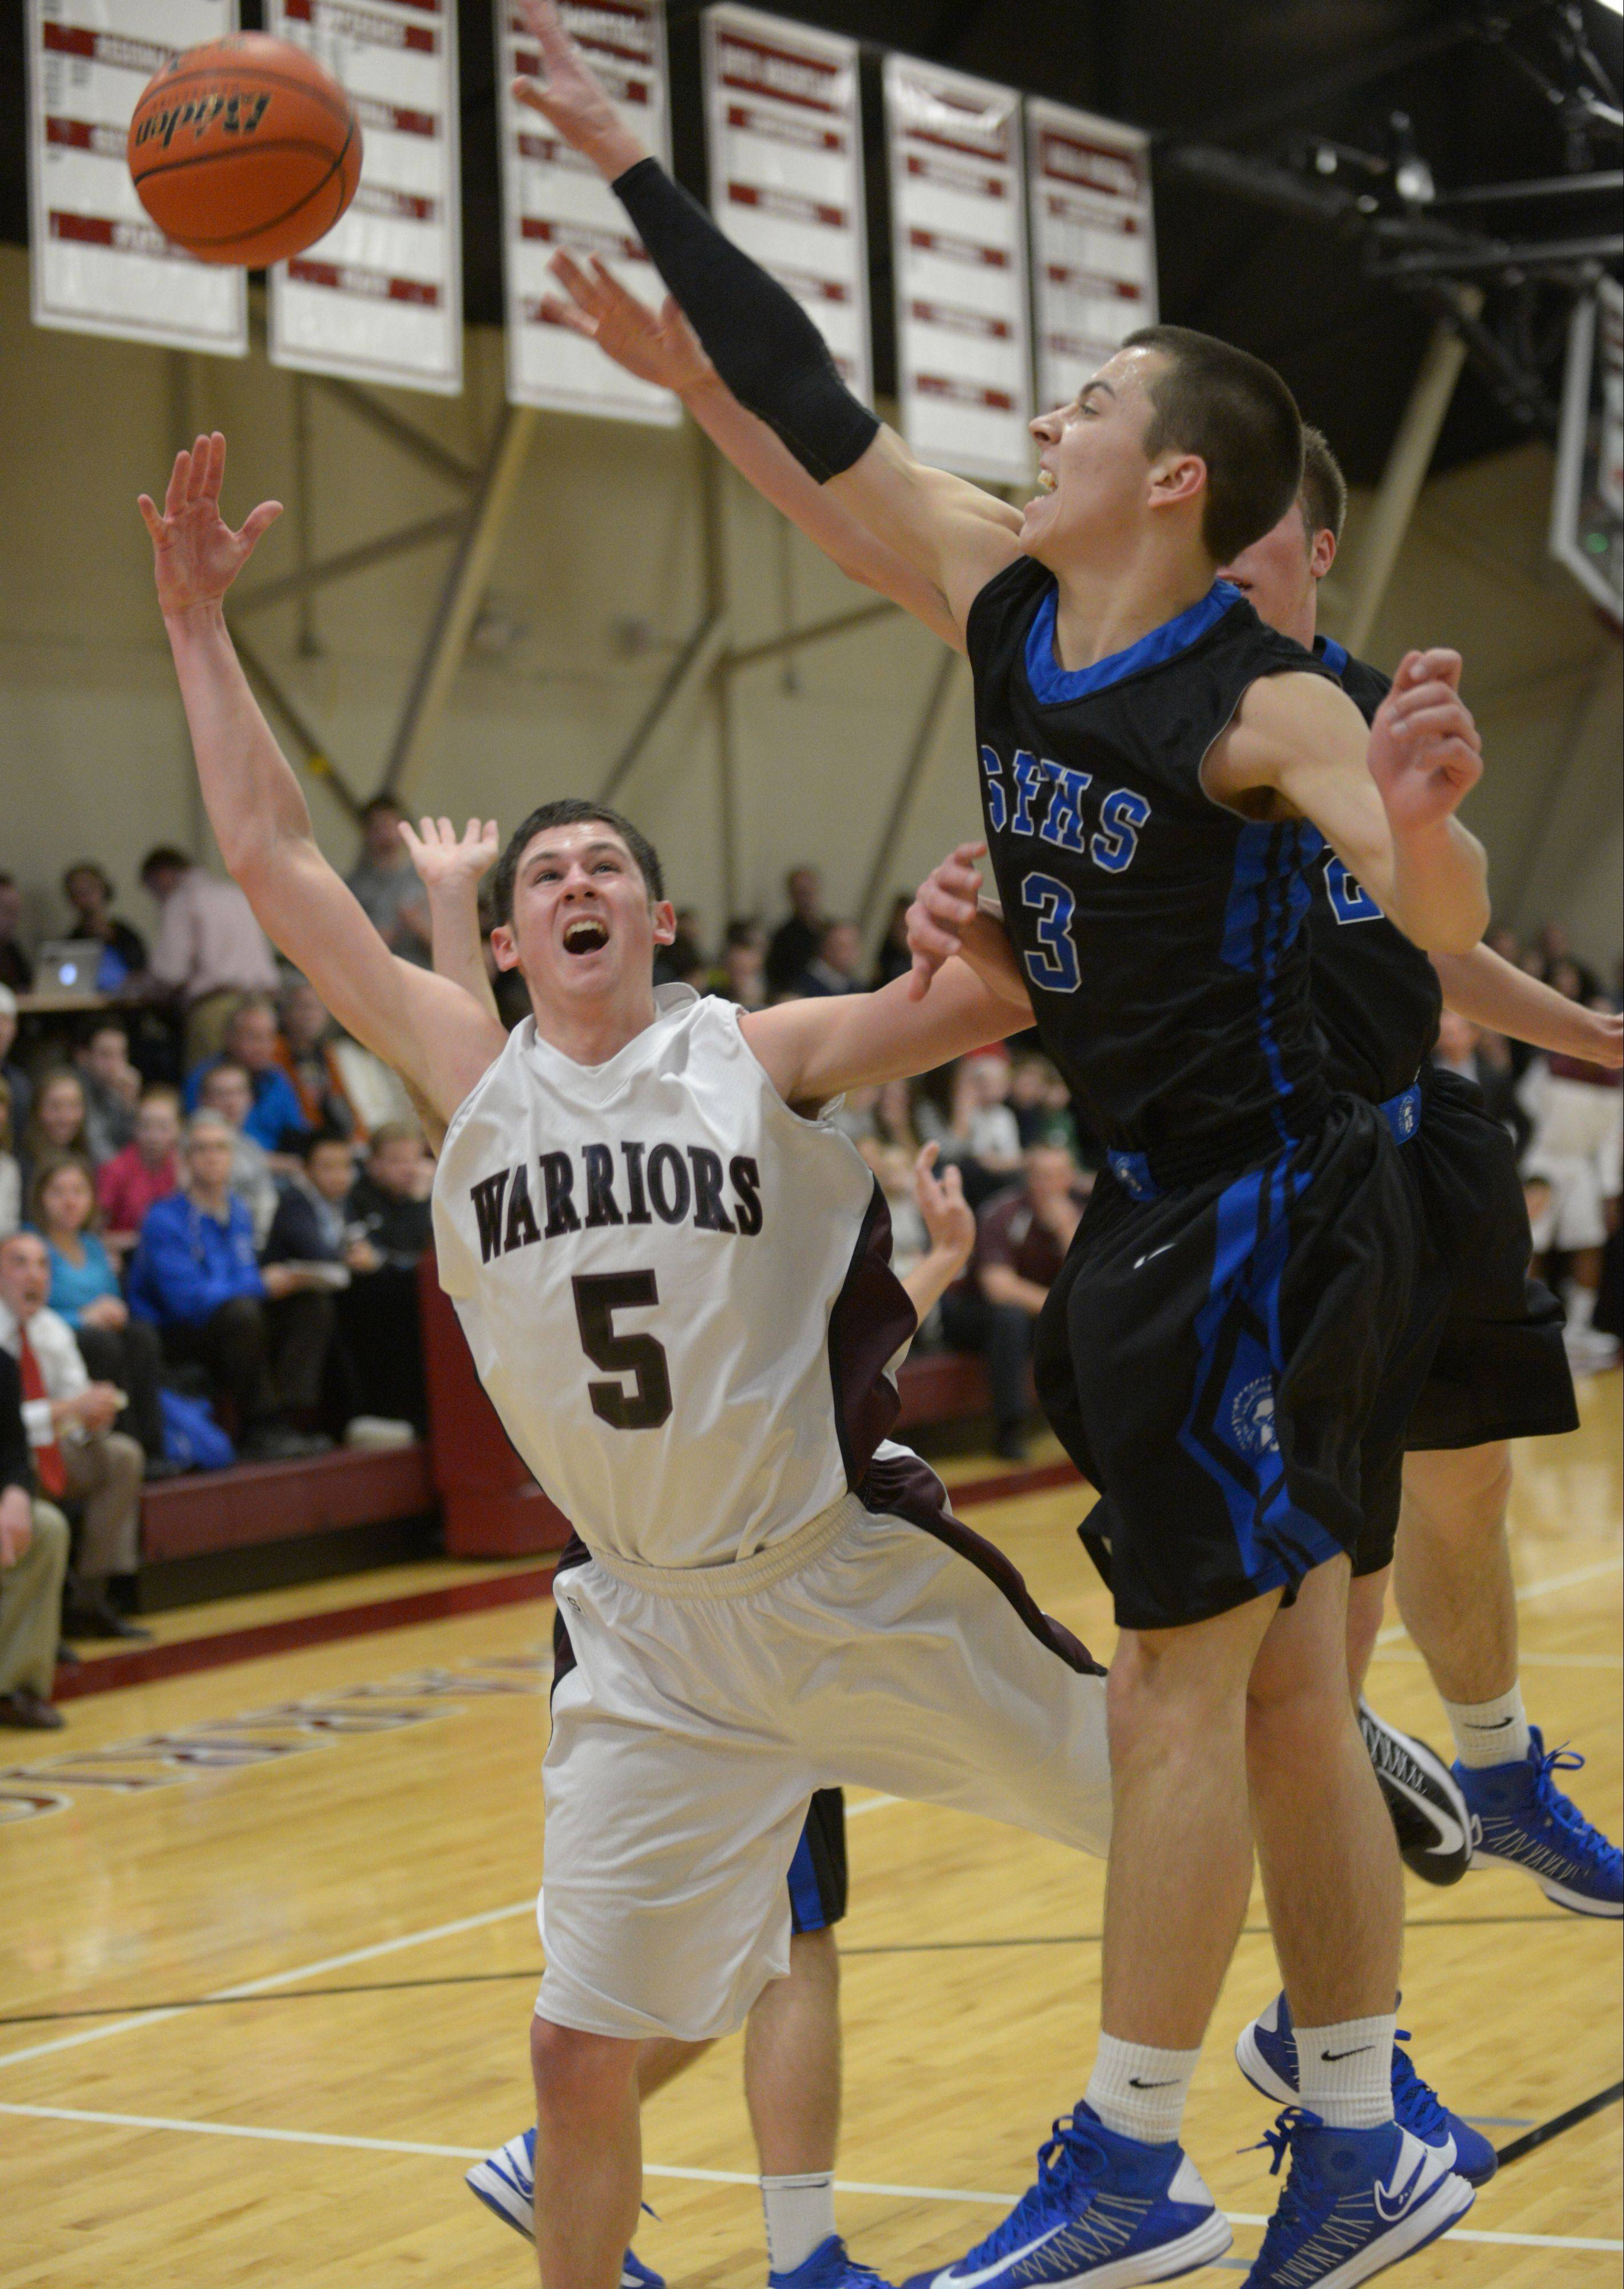 Jason Pisarski of St. Francis tries to block a shot by Wheaton Academy's Collin Roy.